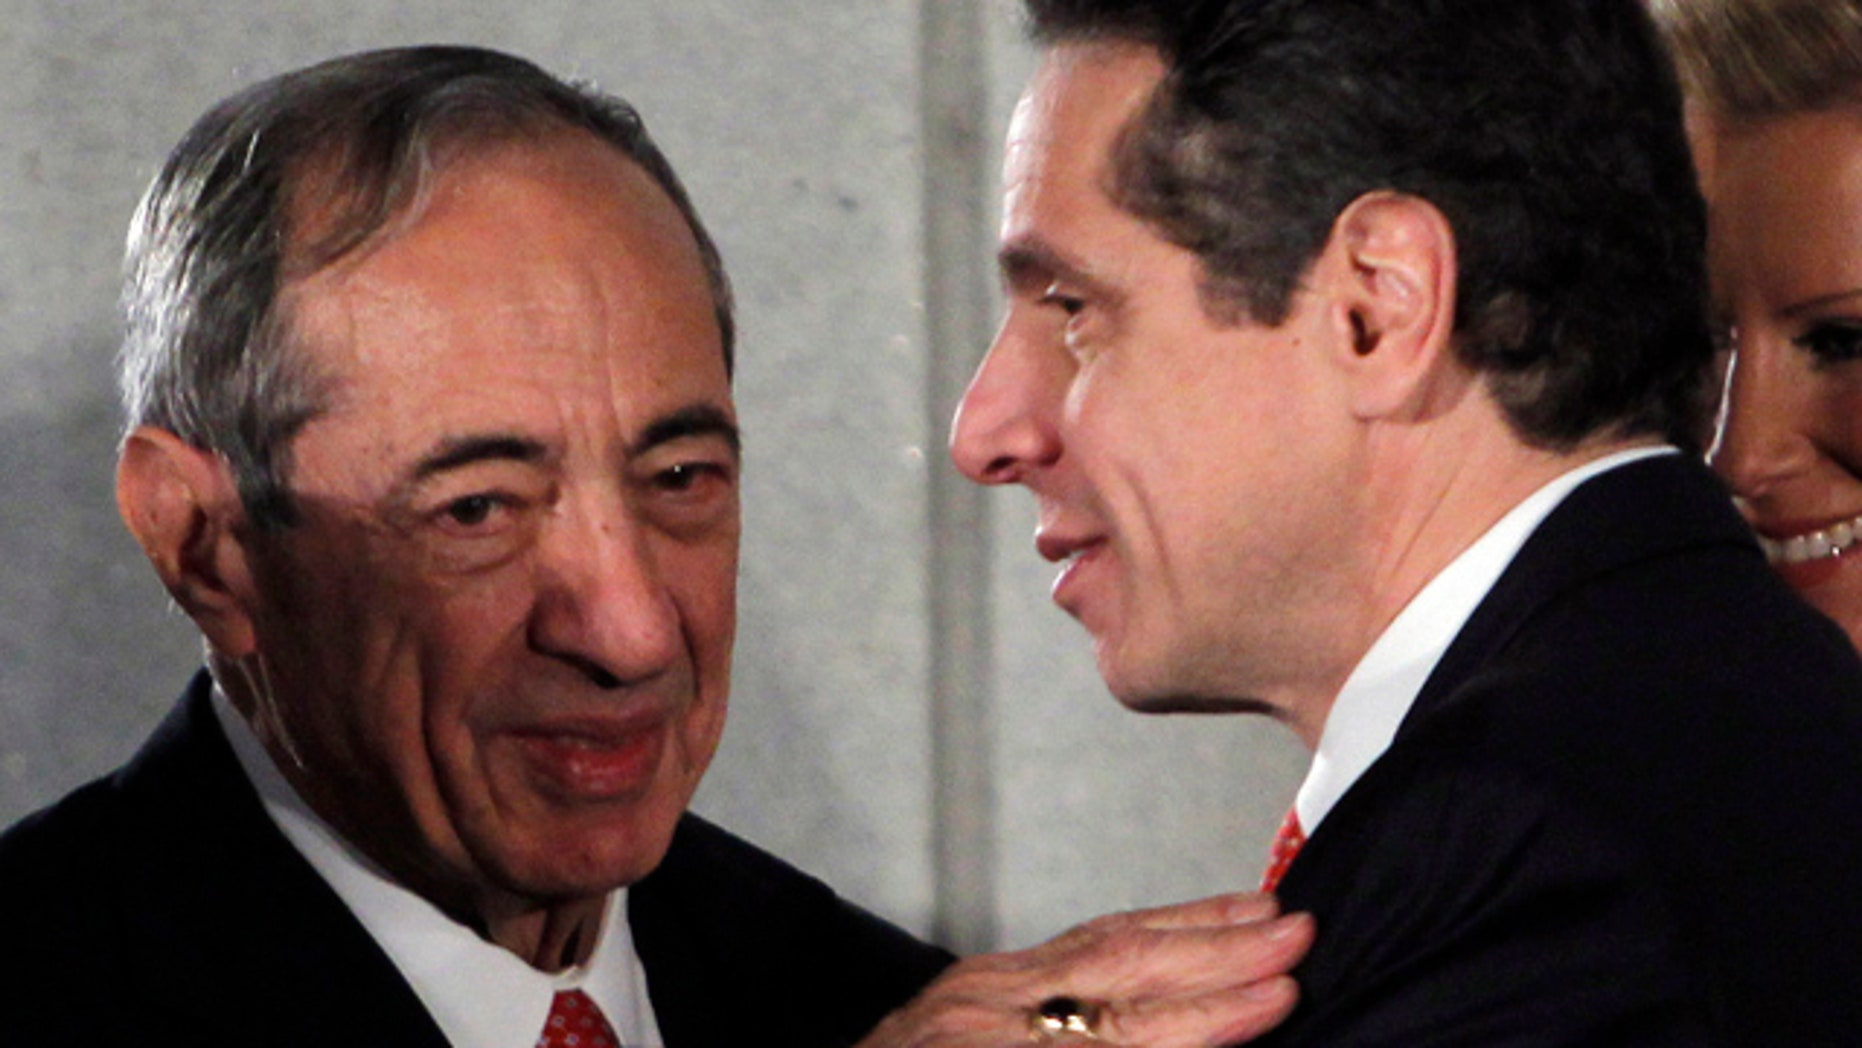 FILE- In this Jan. 1, 2011 file photo, former New York Gov. Mario Cuomo, left, talks with his son and current New York Gov. Andrew Cuomo, during a swearing-in ceremony in the War Room at the Capitol in Albany, N.Y.  (AP Photo/Mike Groll, Pool)